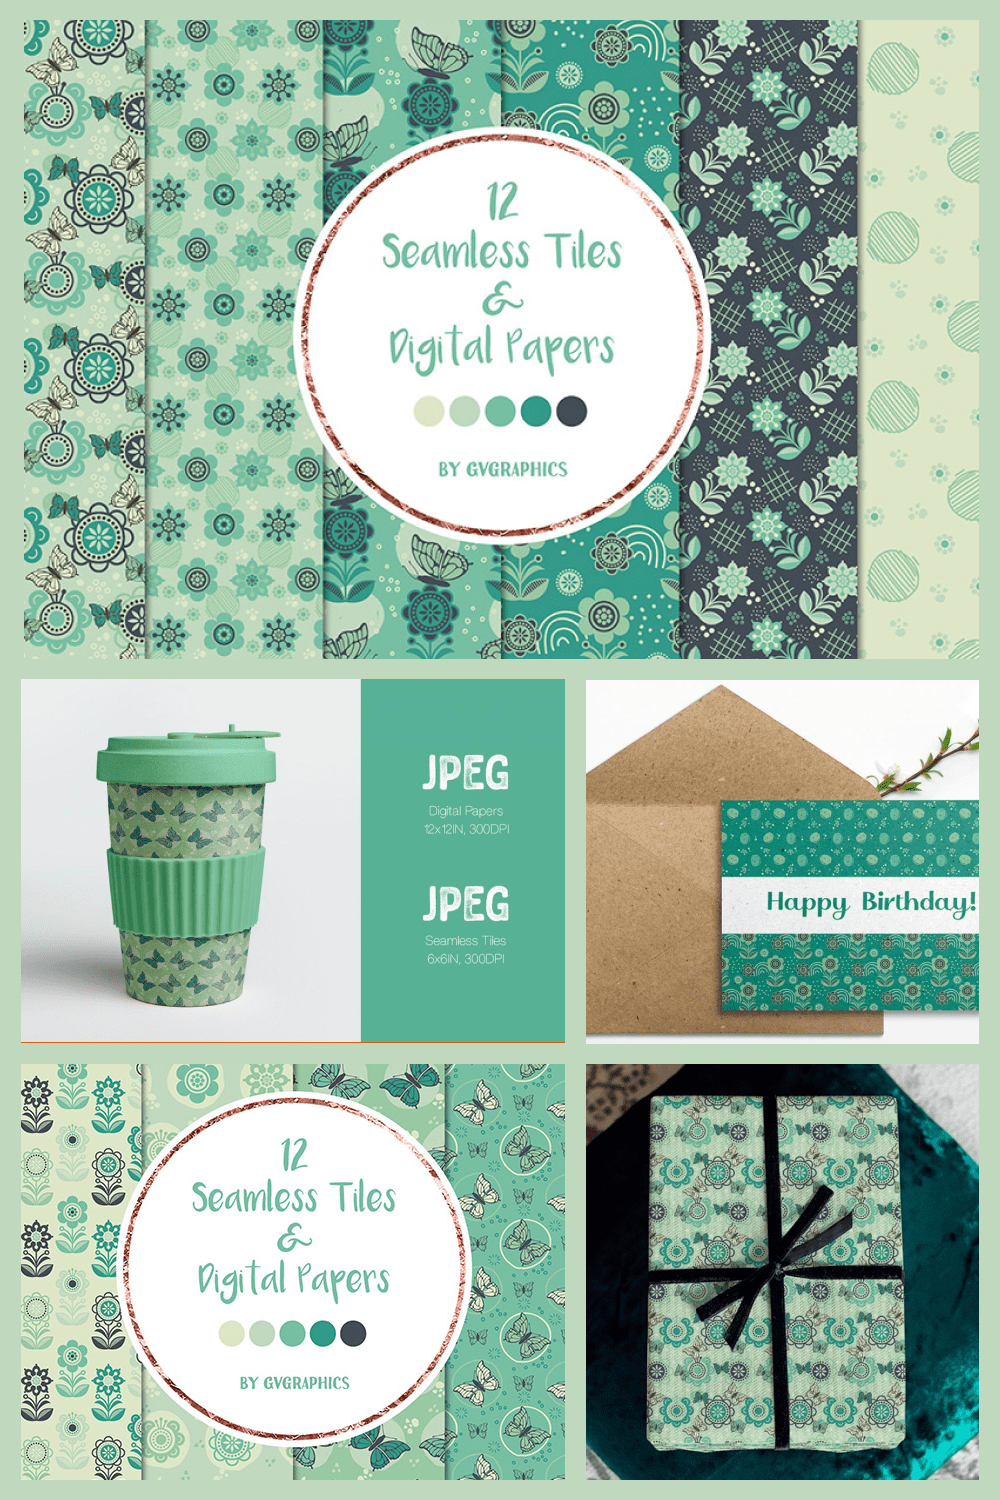 Blue Flowers, Butterflies and Doodles, Seamless Tiles and Digital Papers - MasterBundles - Pinterest Collage Image.